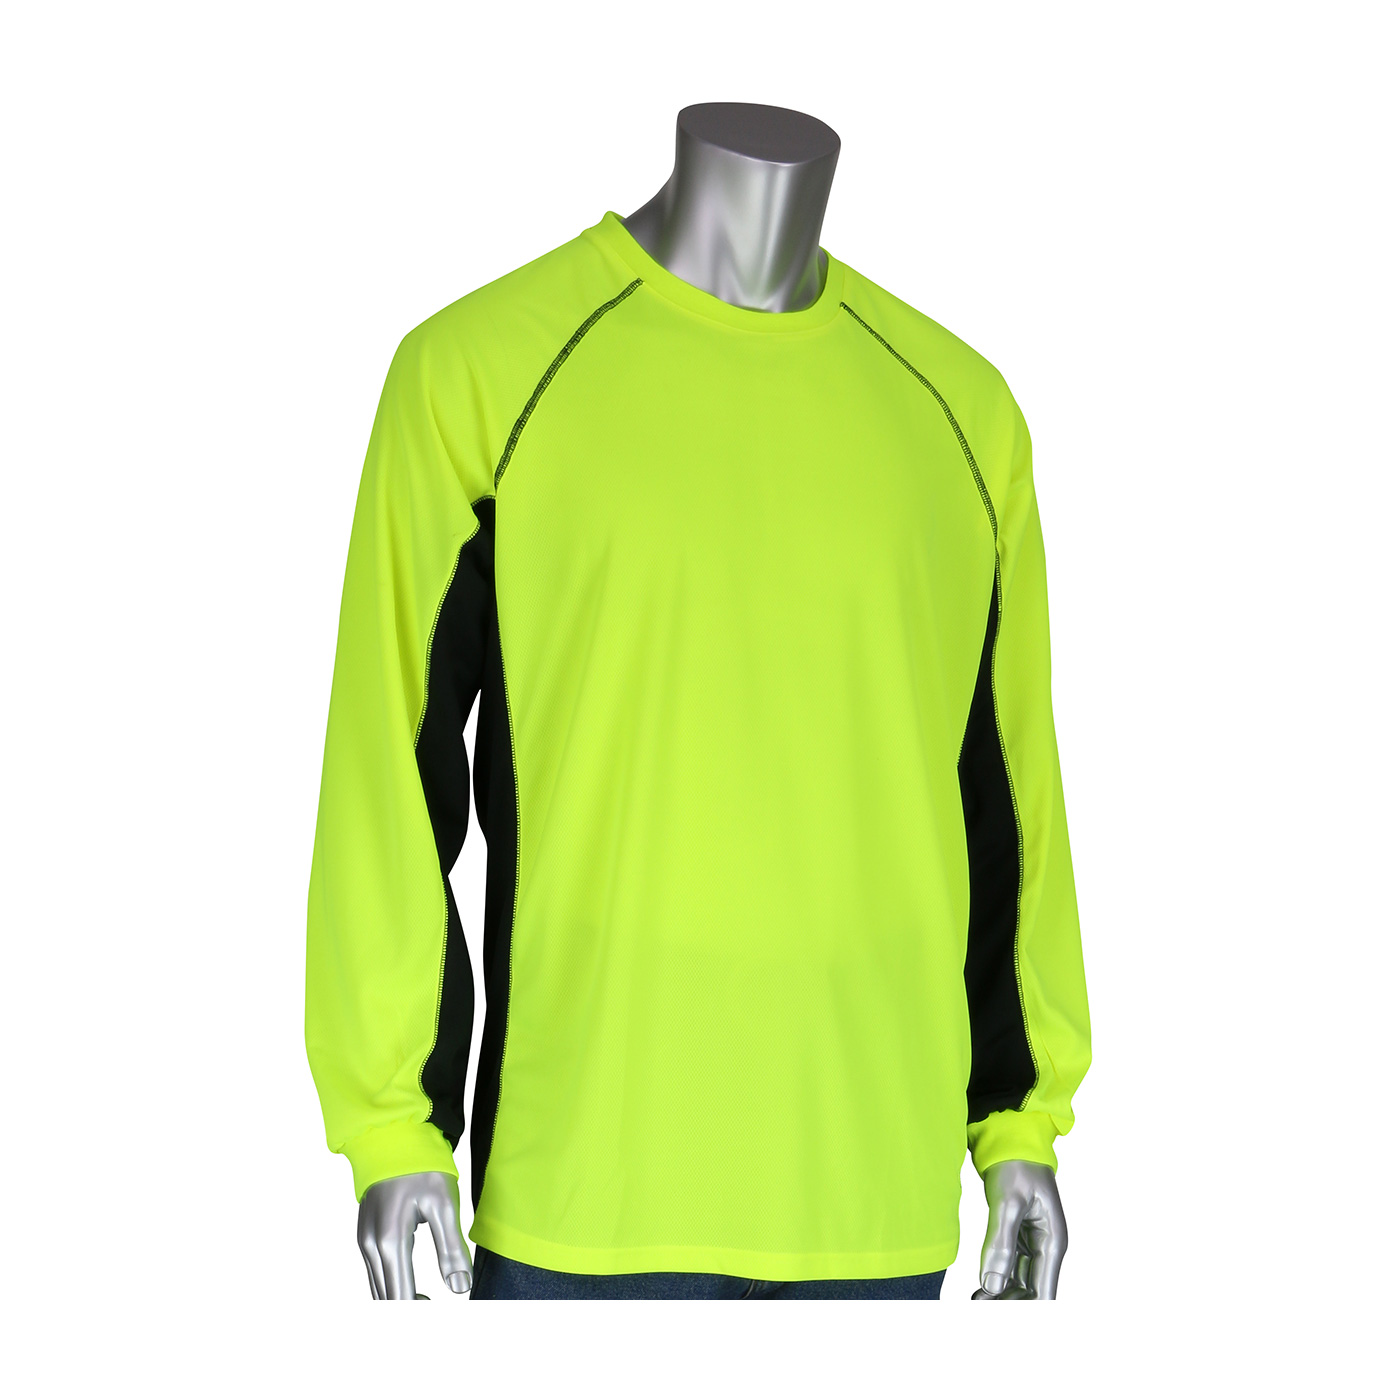 PIP® Non-ANSI Long Sleeve T-Shirt with 50+ UPF Sun Protection, Insect Repellent Treatment and Black Trim #310-1150B